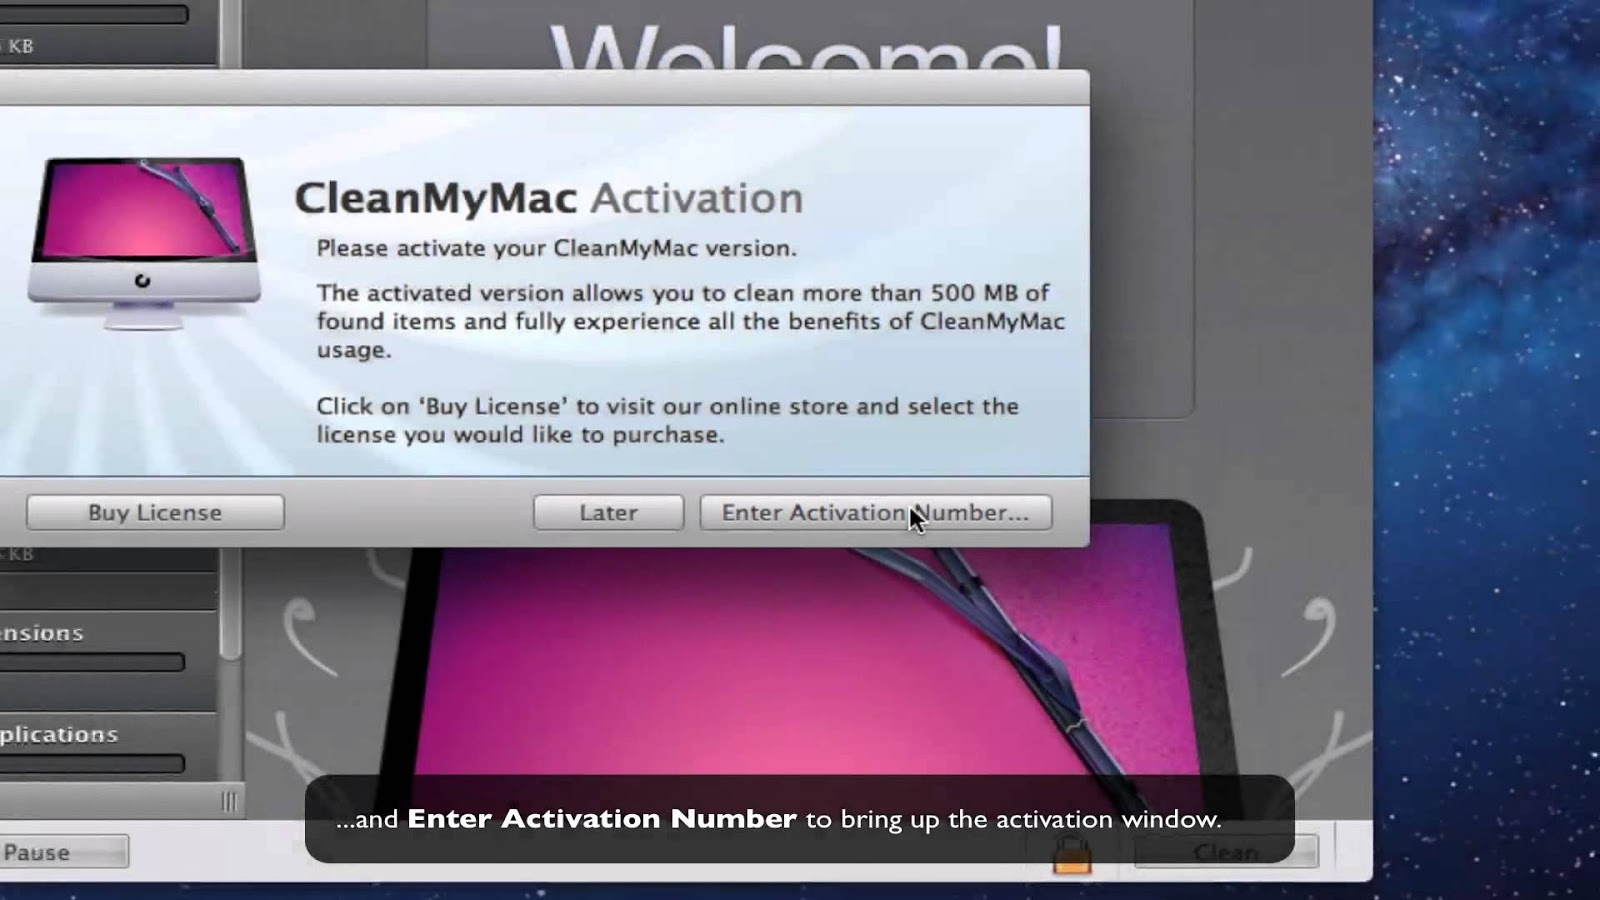 cleanmymac 3 activation code keygen